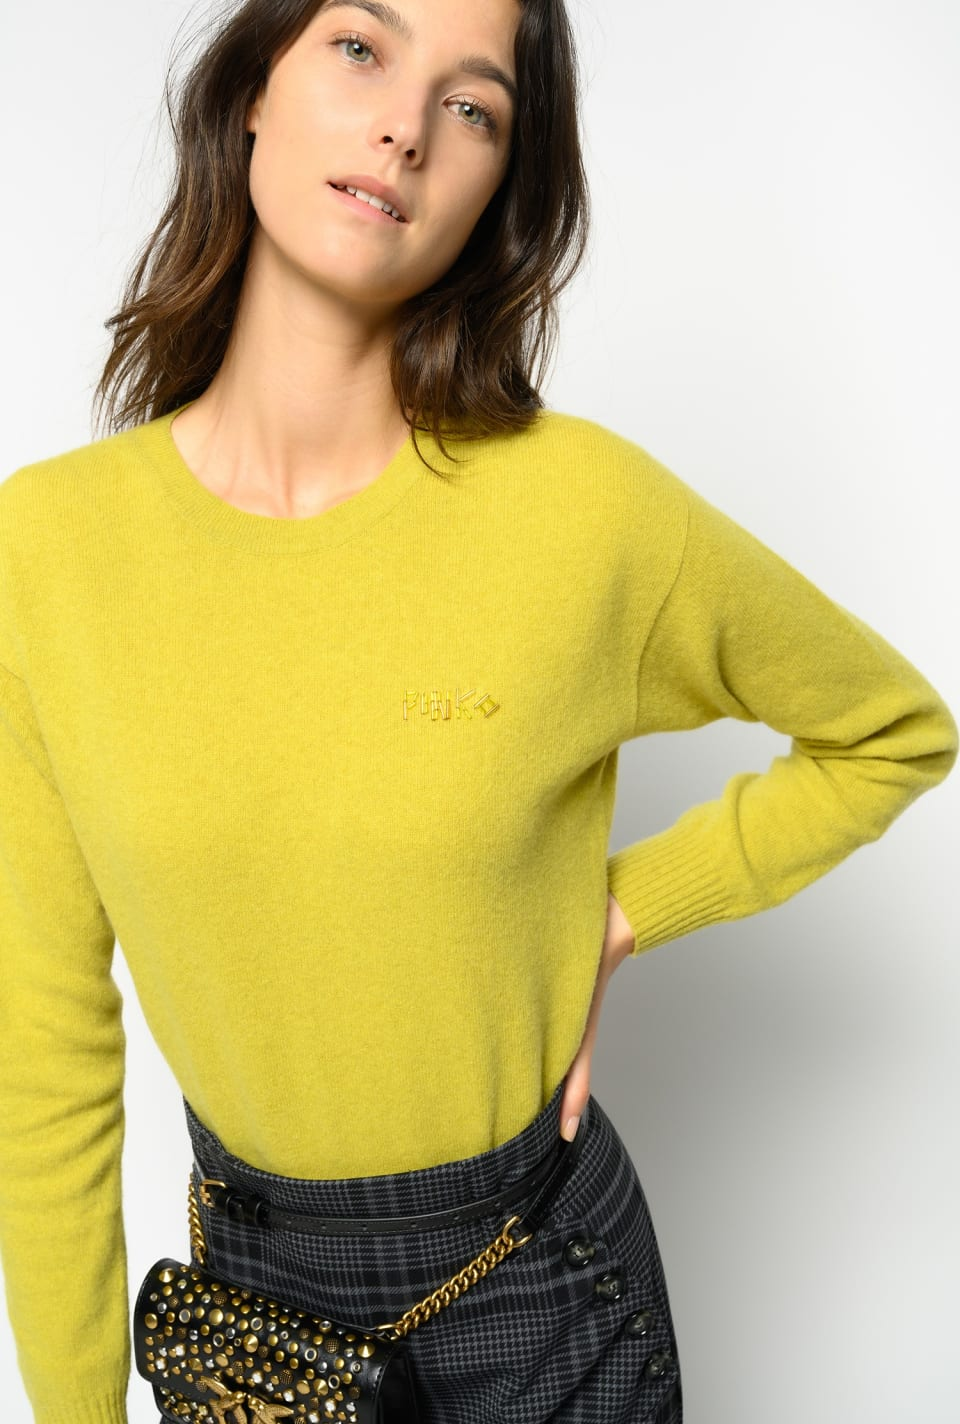 Wool pullover with embroidery - Pinko